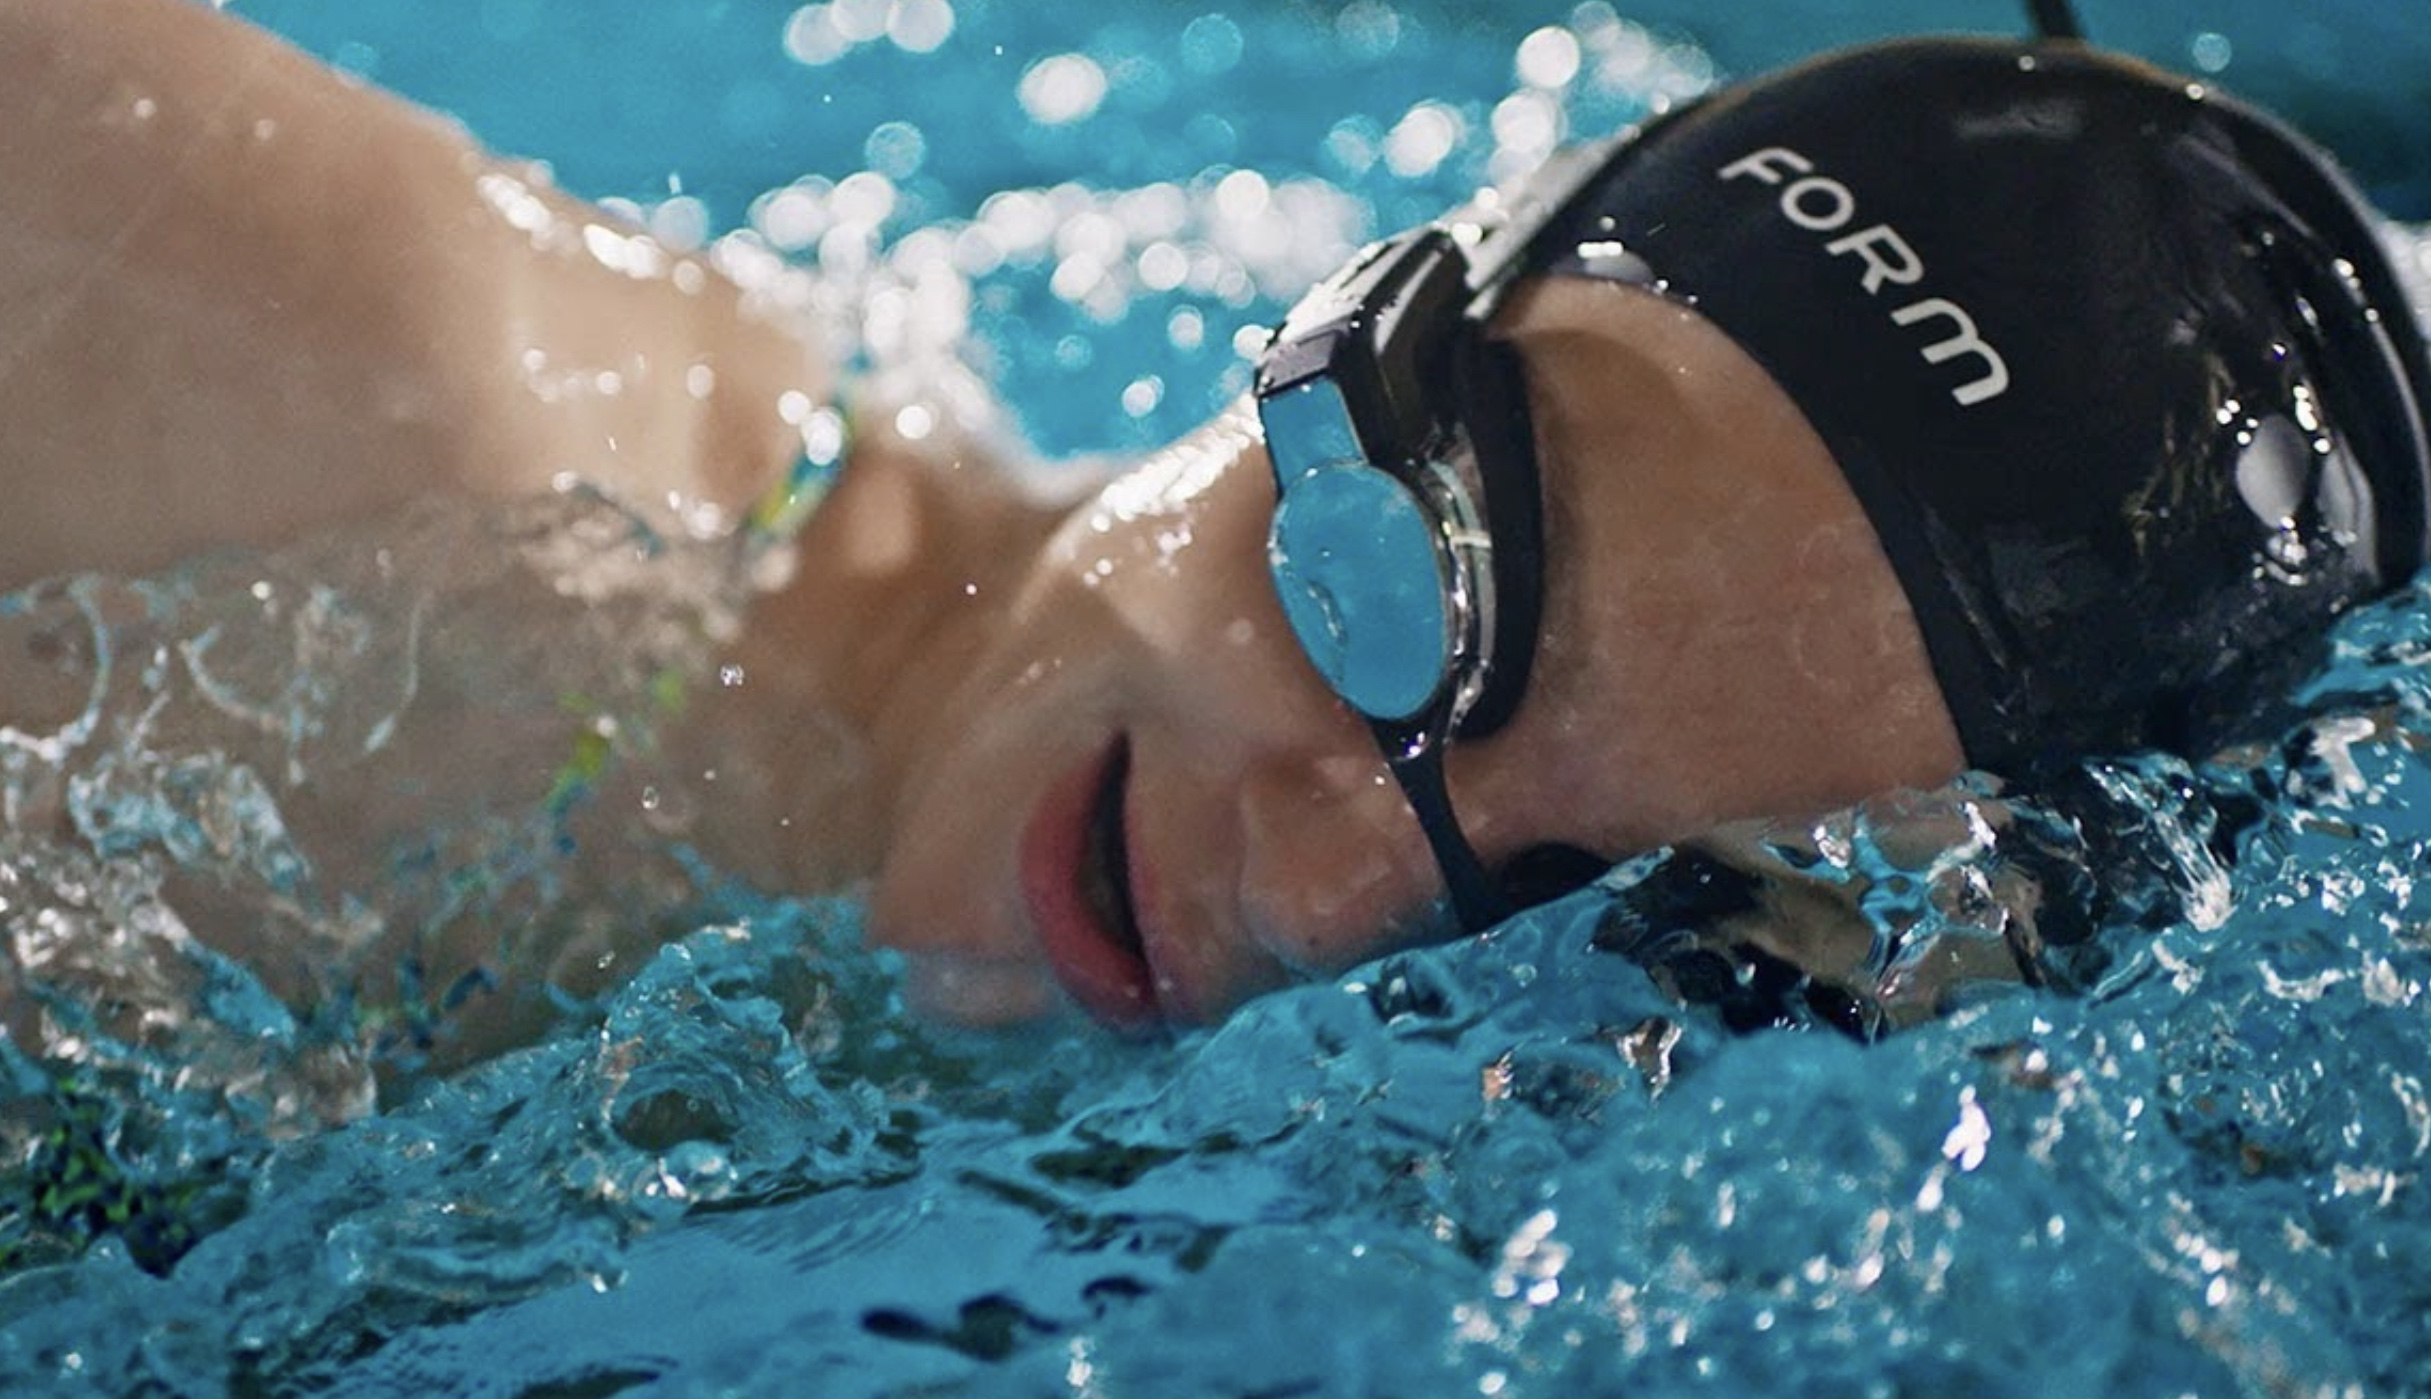 TitaniumGeek img 1435 FORM Swim Goggles   Pipeline Post Gear Reviews Triathlon    Image of img 1435